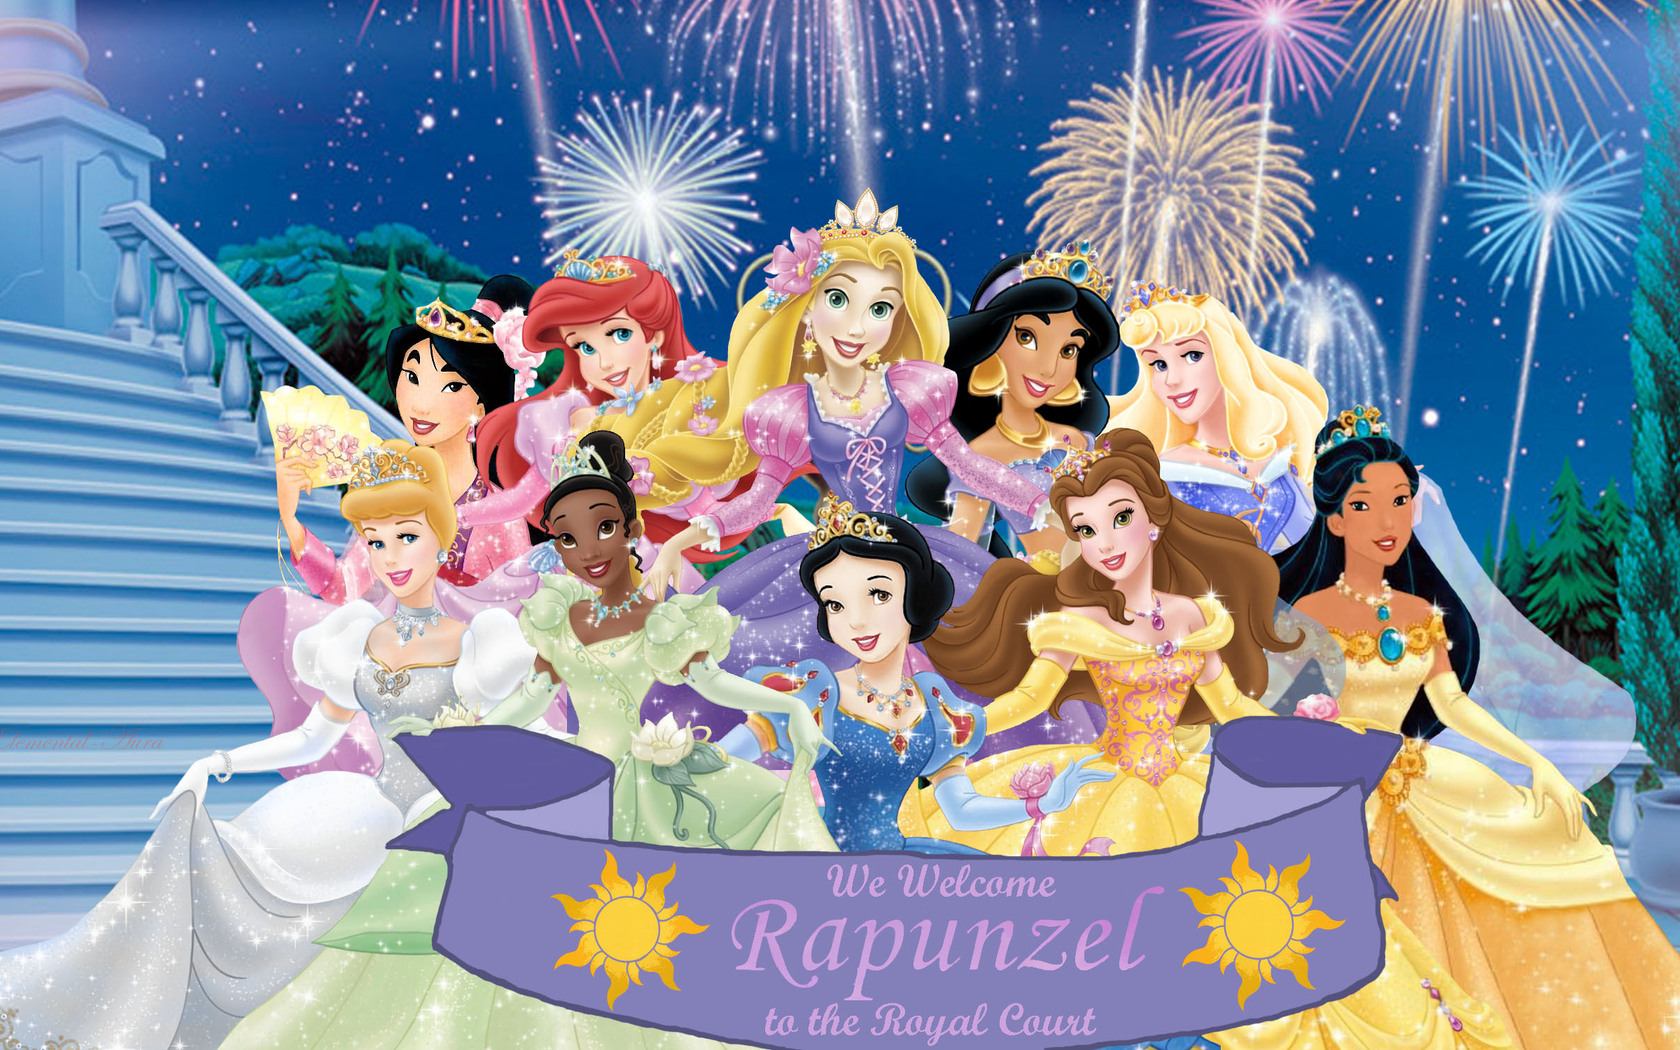 Disney Princess Wallpapers Pictures Desktop Wallpapers 1680x1050 1680x1050